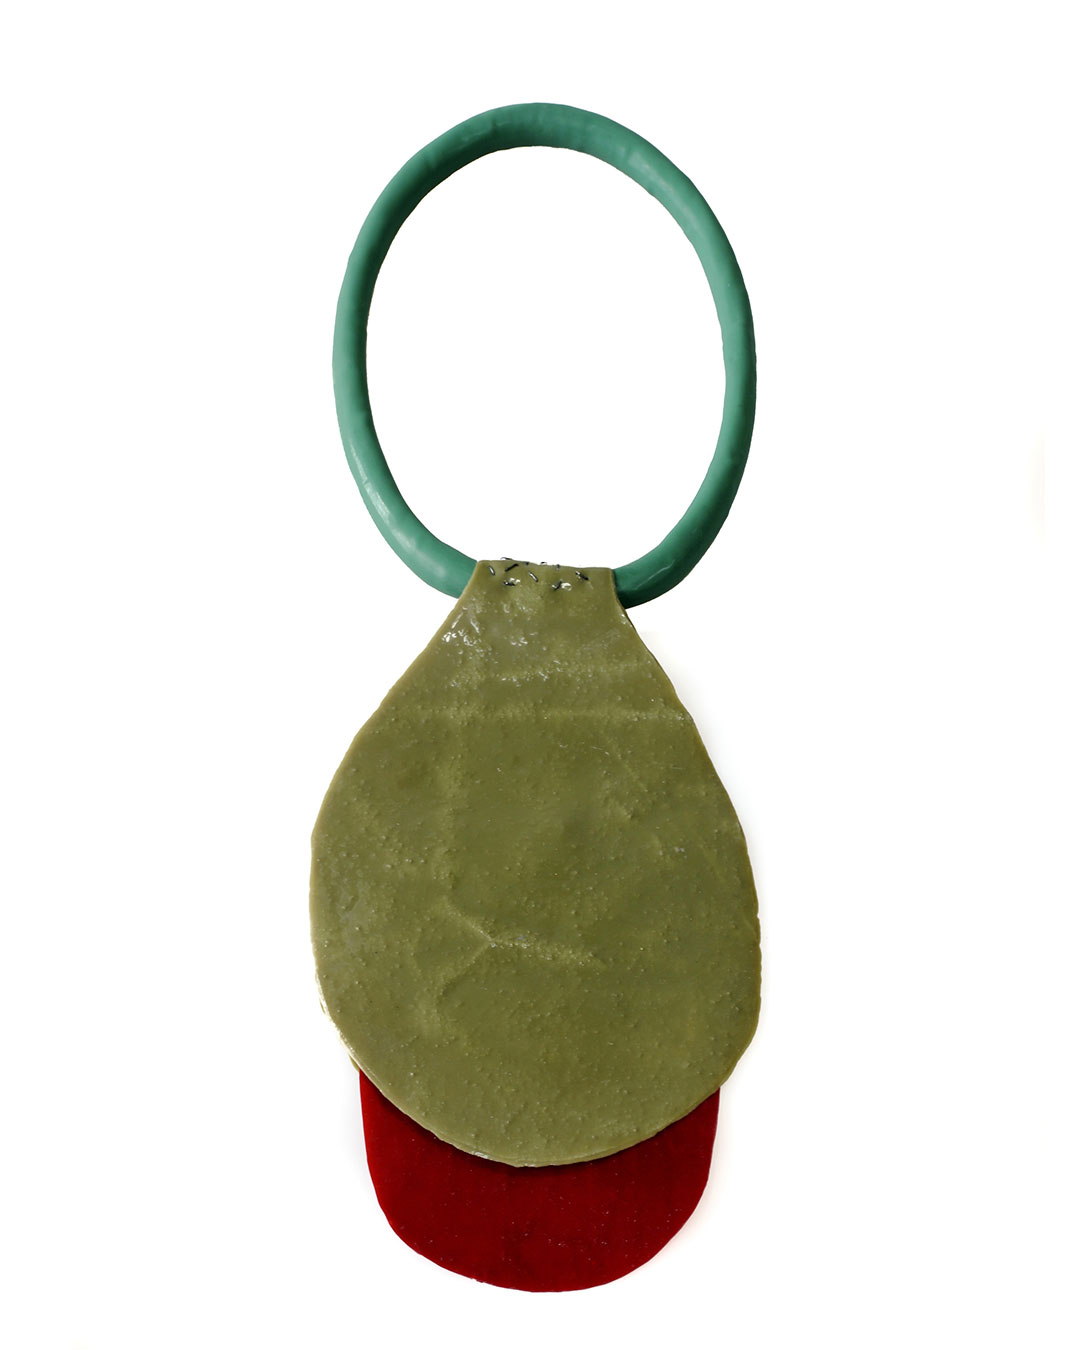 Ela Bauer, necklace, 2012-2020, resin, pigment, silicone rubber, €980